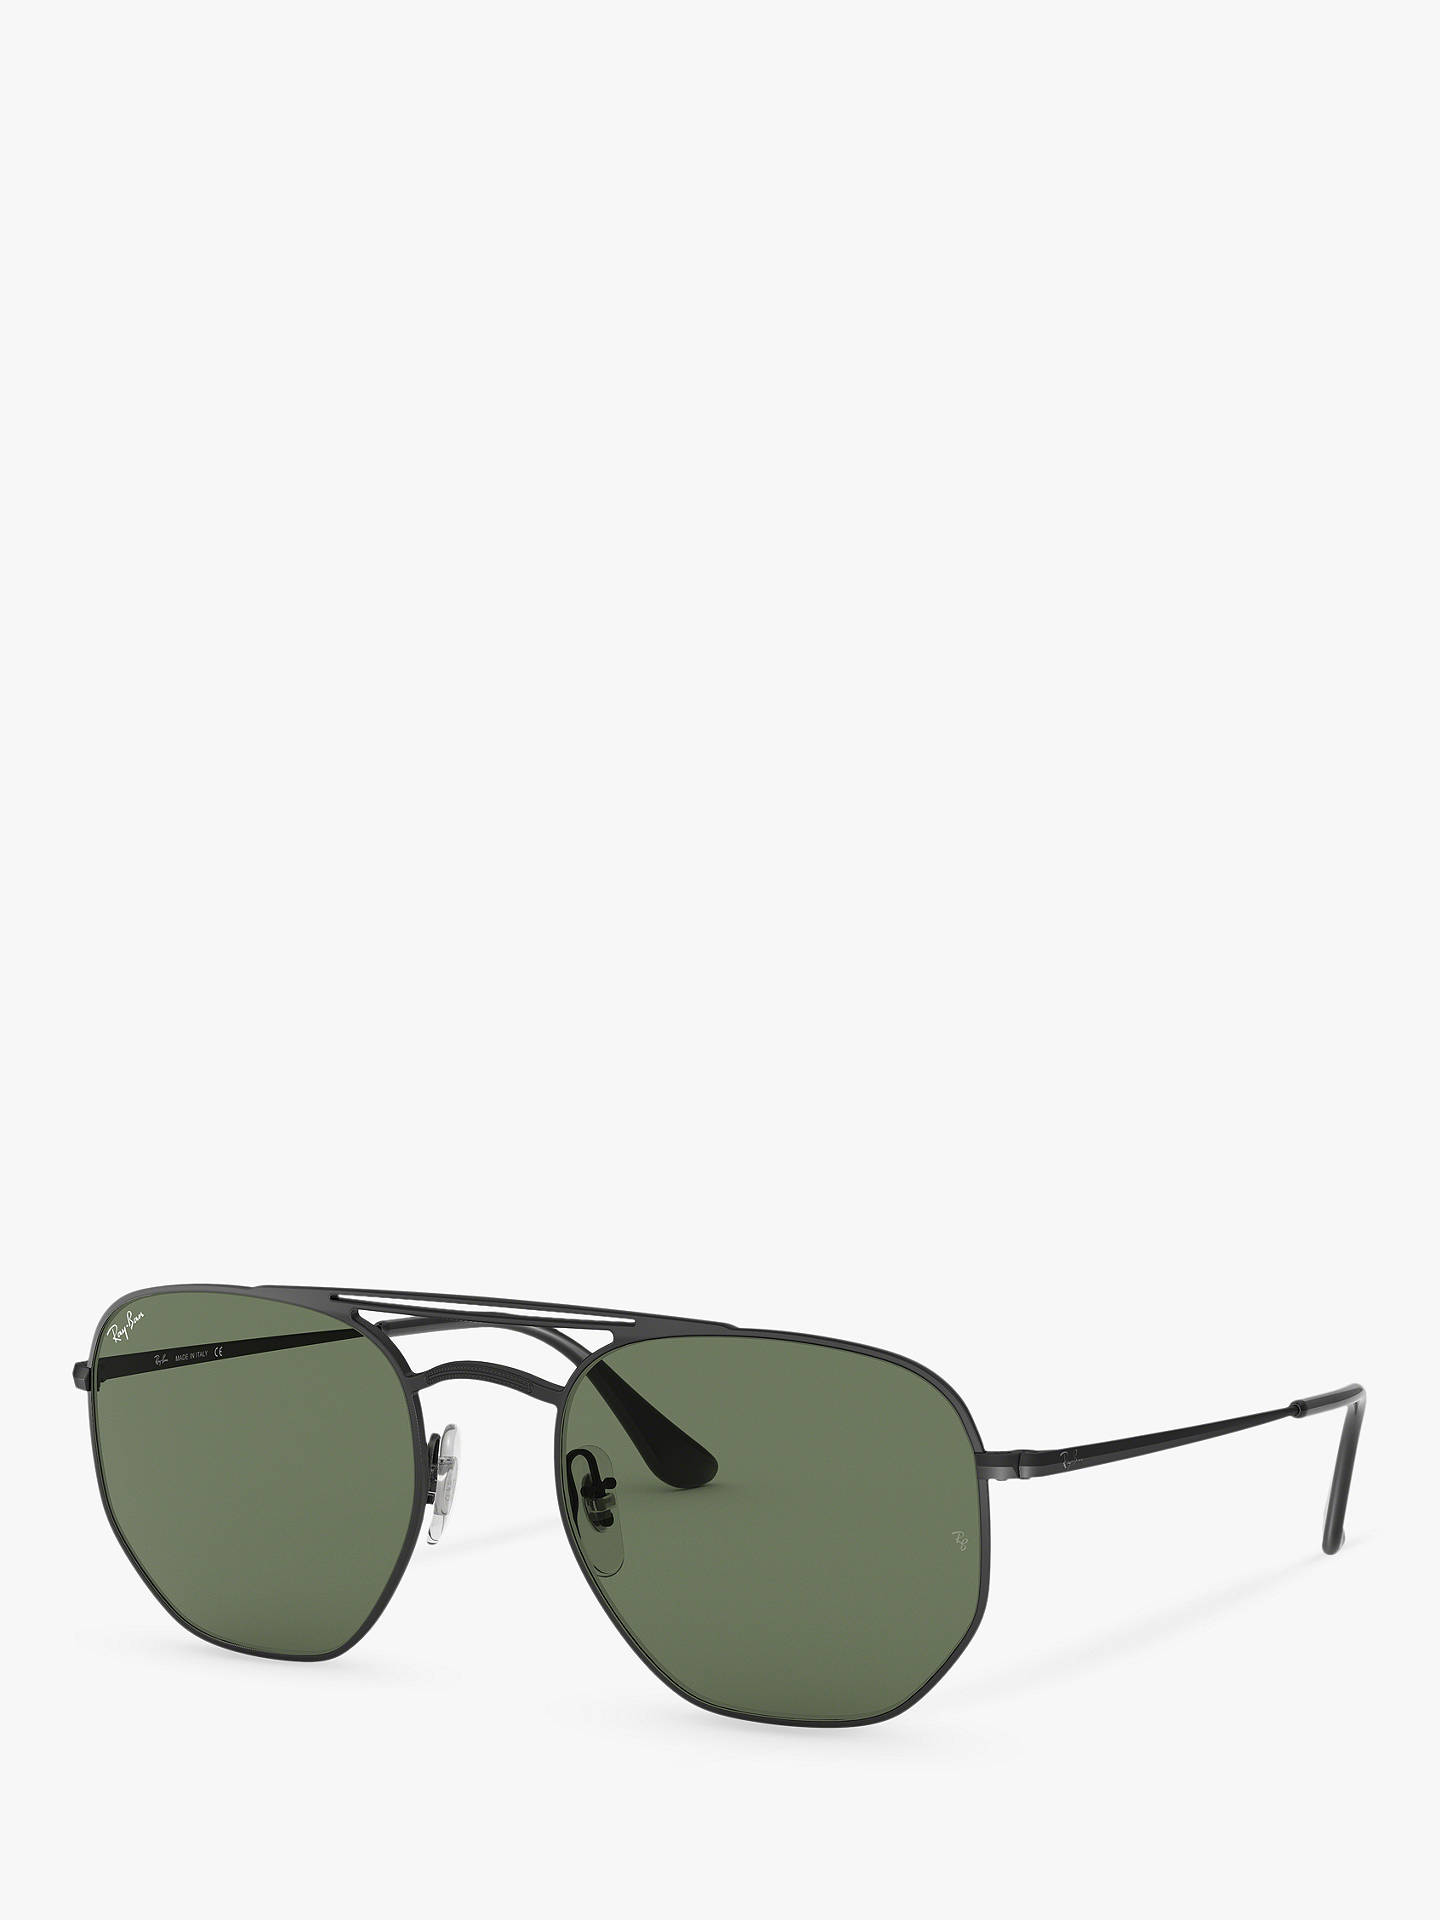 1db01647492 Ray-Ban RB3609 Unisex Square Sunglasses at John Lewis   Partners